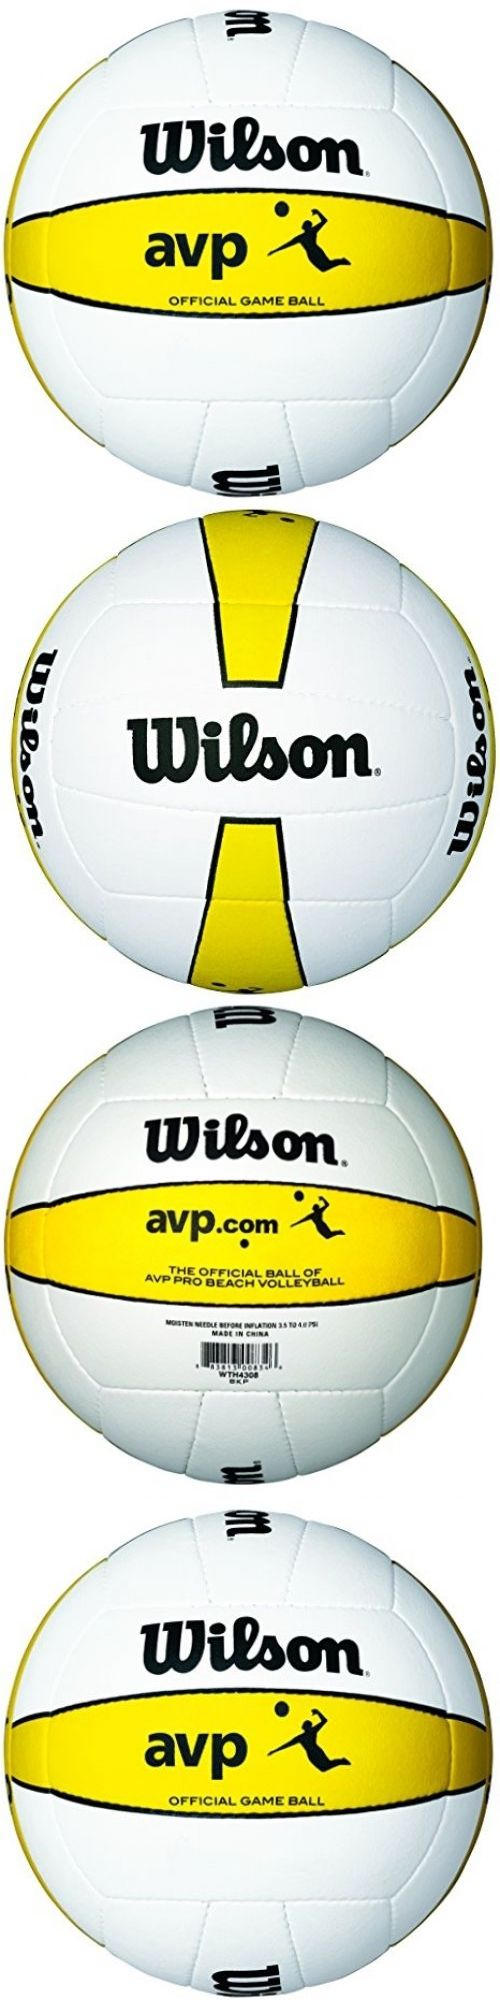 Volleyballs 159132: Wilson Official Avp Outdoor Game Volleyball Sports Microfiber Ball Leather Cover -> BUY IT NOW ONLY: $58.49 on eBay!